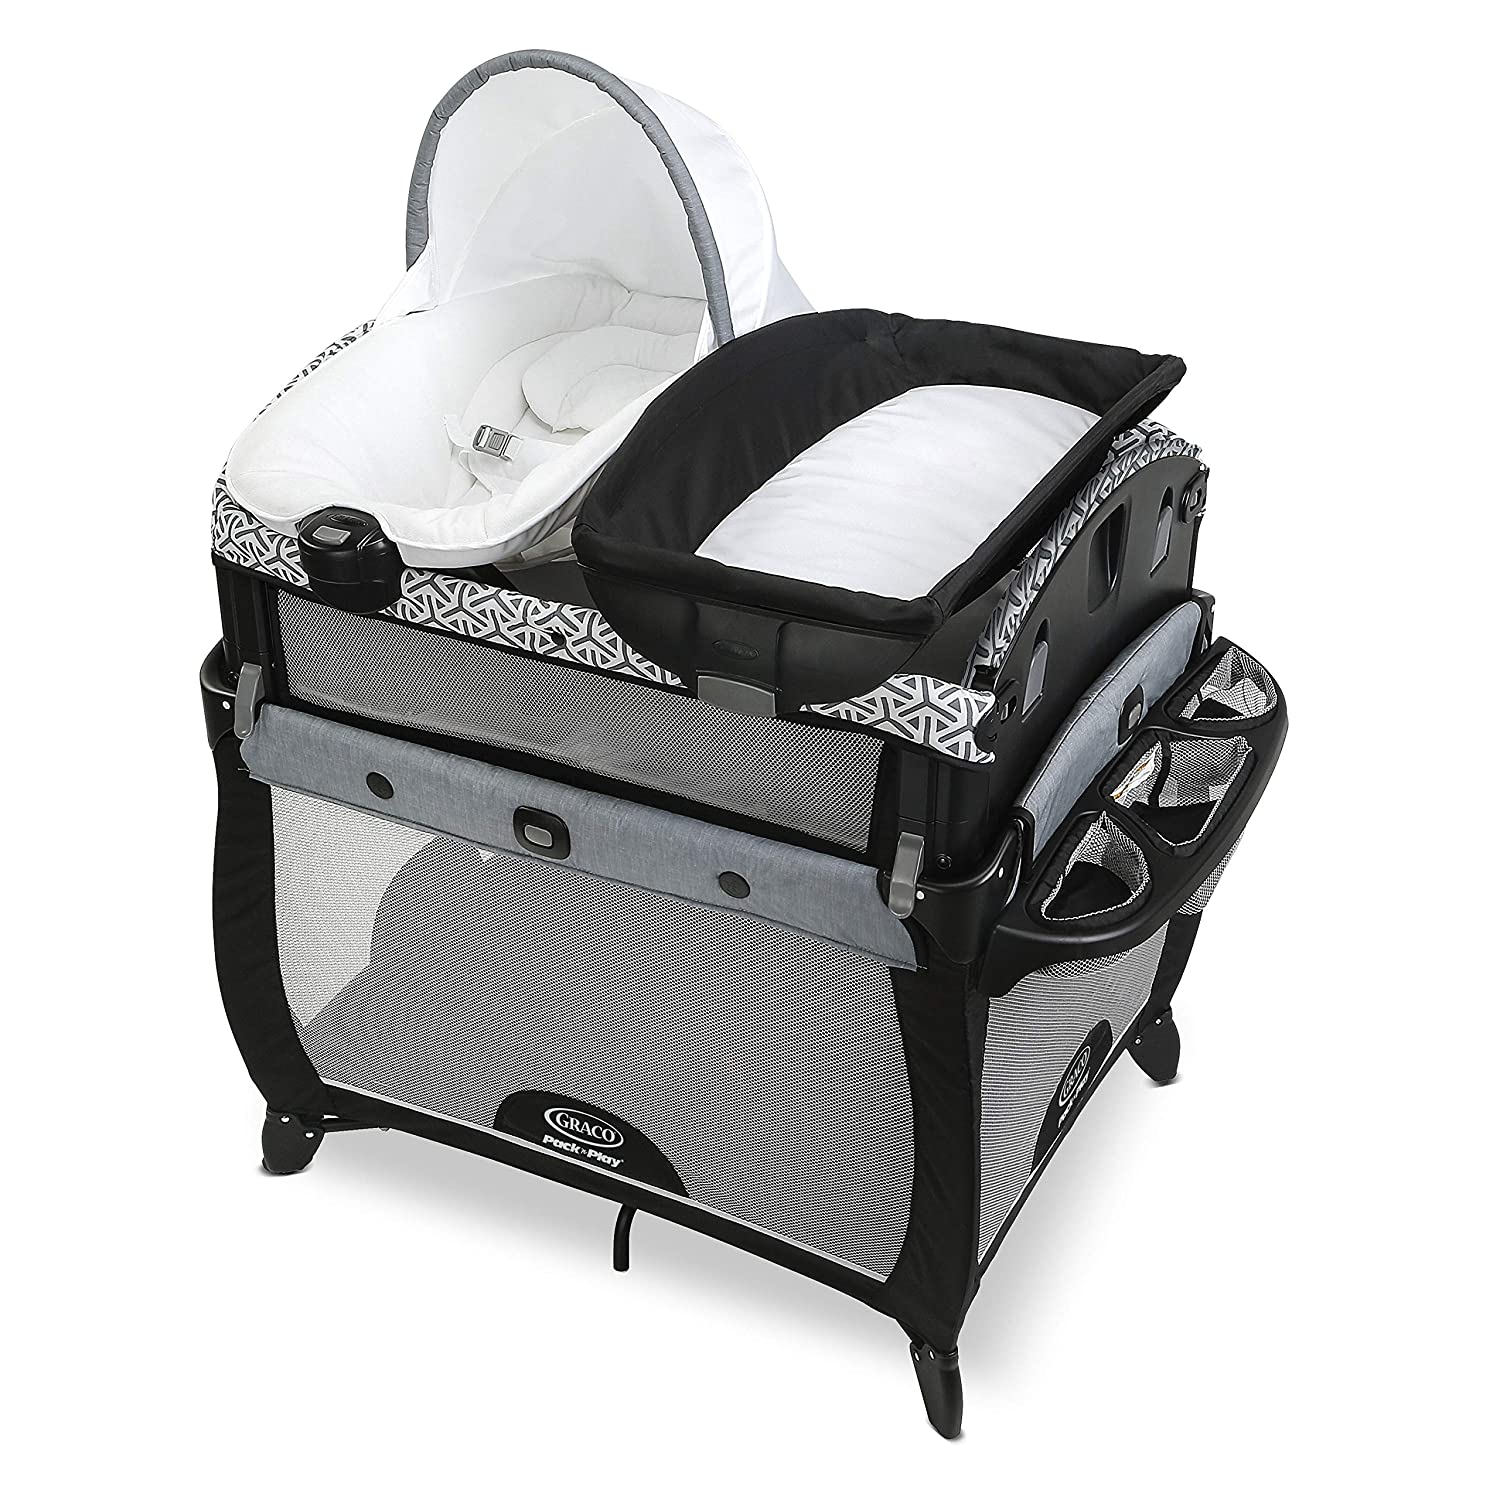 Graco Pack n Play Newborn2Toddler Playard Includes Portable Napper, Raised Infant Bassinet, and Diaper Changer, Mahan